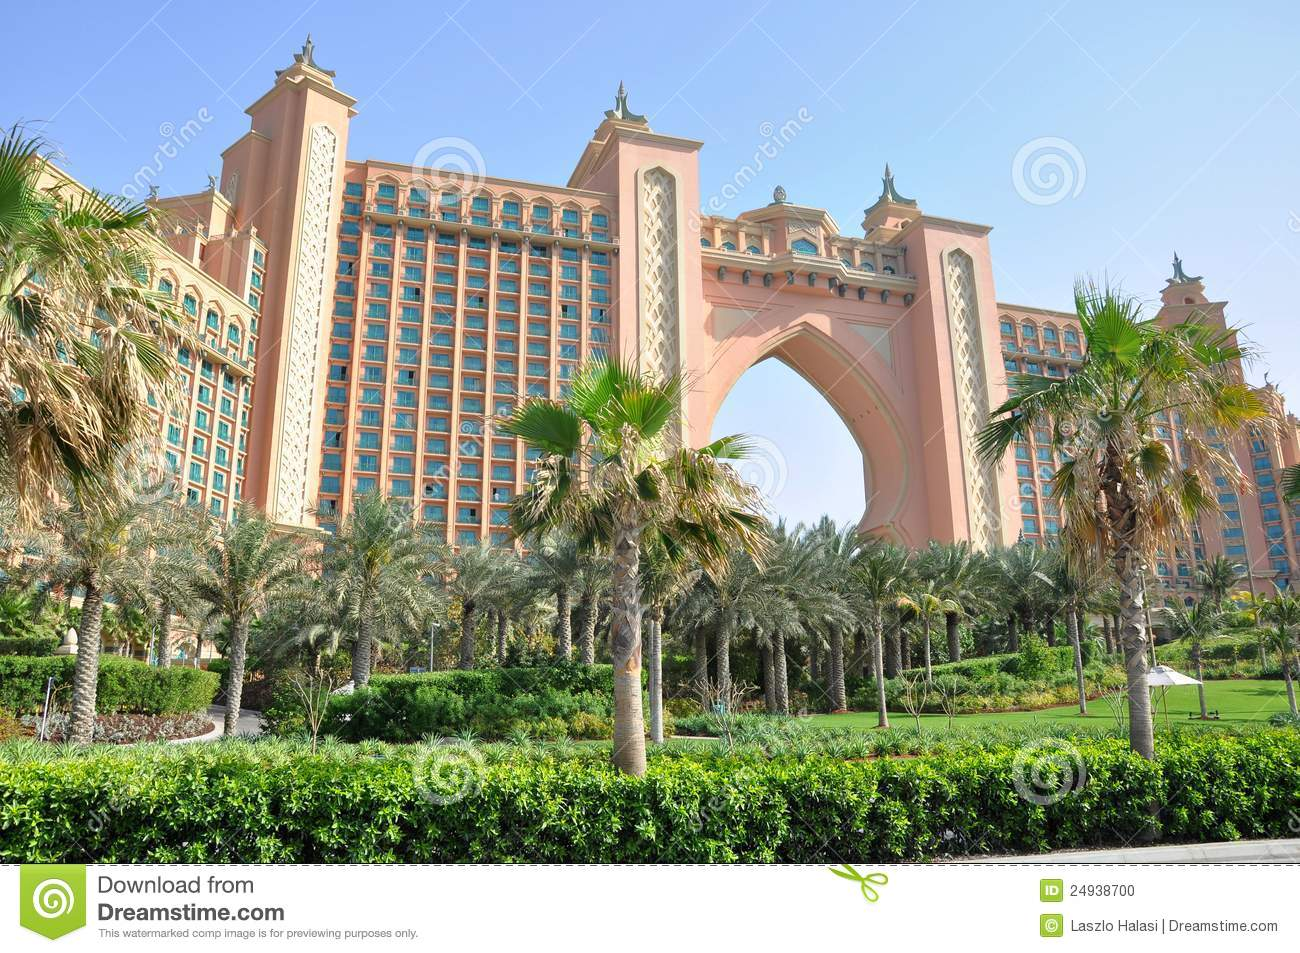 Atlantis the palm hotel in dubai stock photo image for Hotel dubai palm